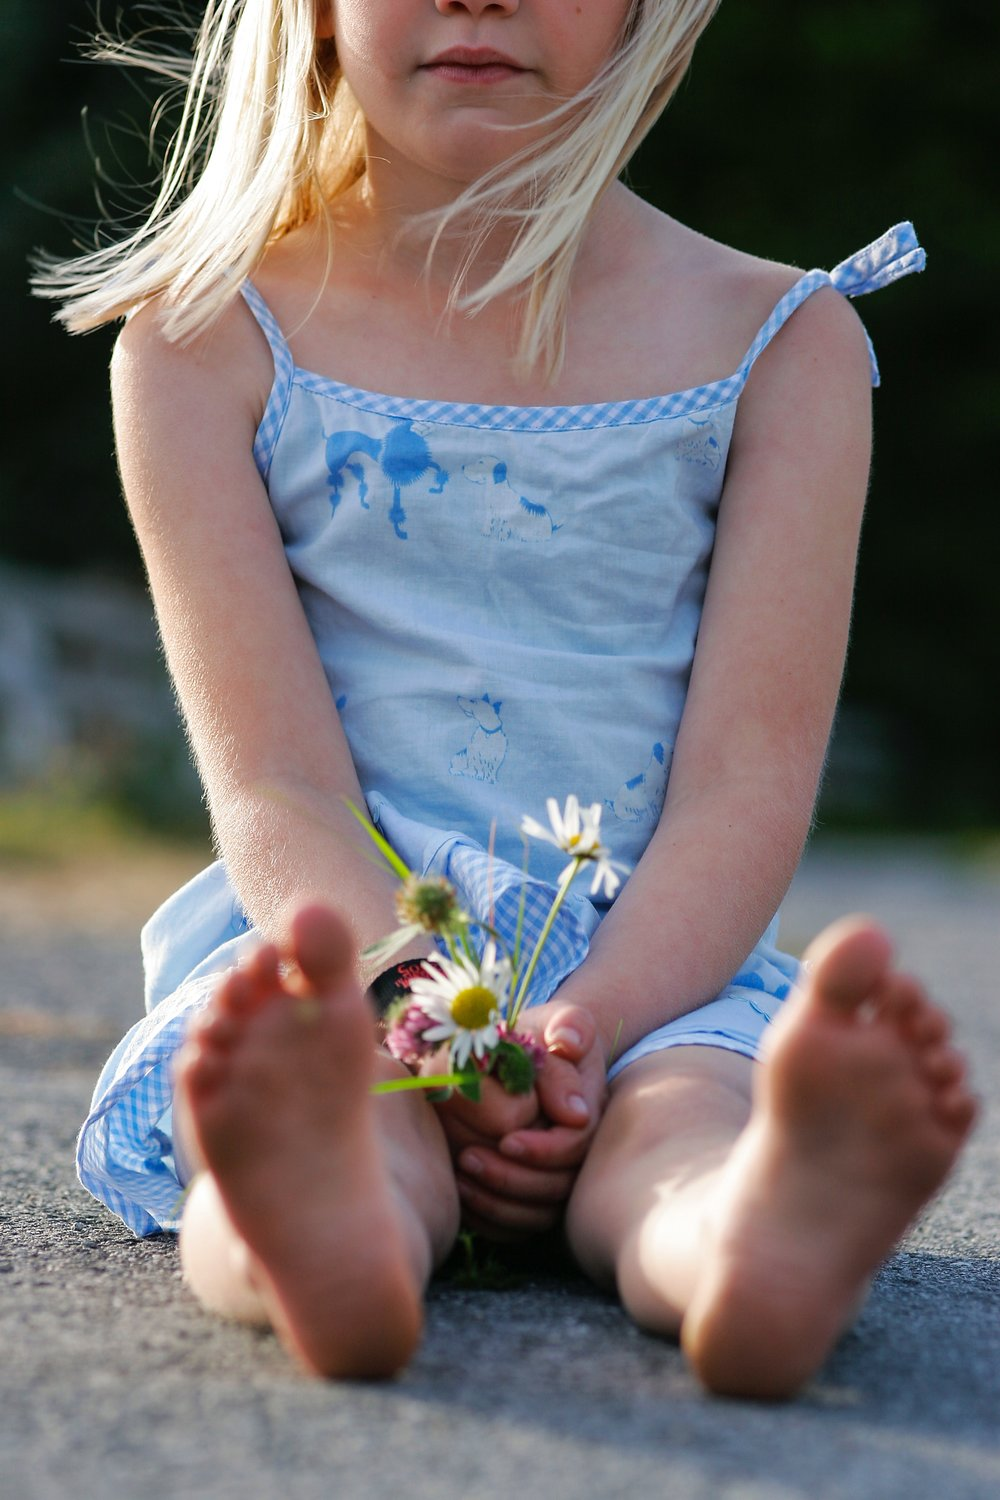 little-girl-holding-flowers.jpg